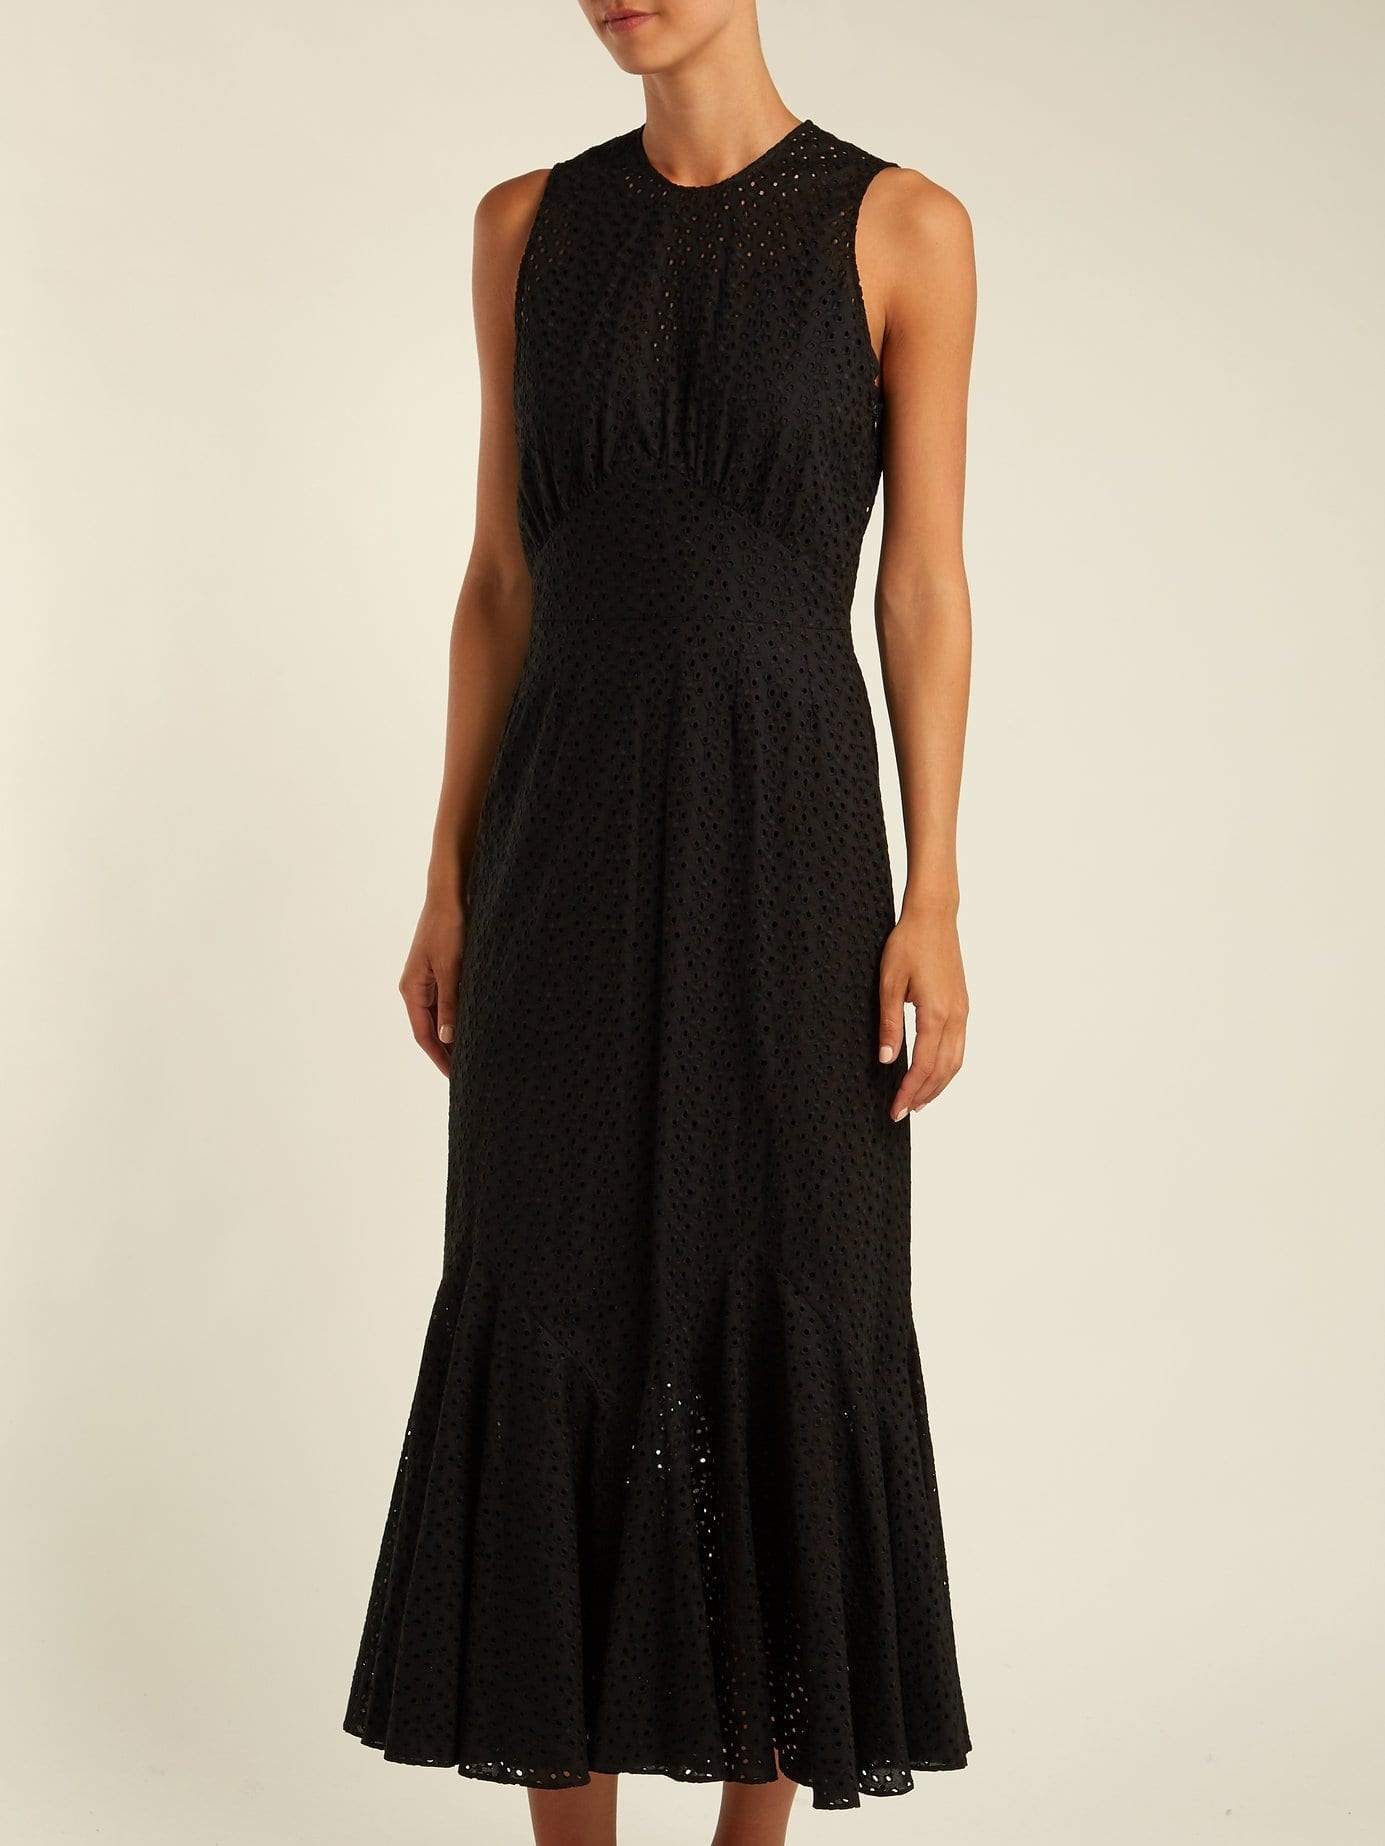 RAEY Broderie Anglaise Fishtail Black Dress - We Select Dresses